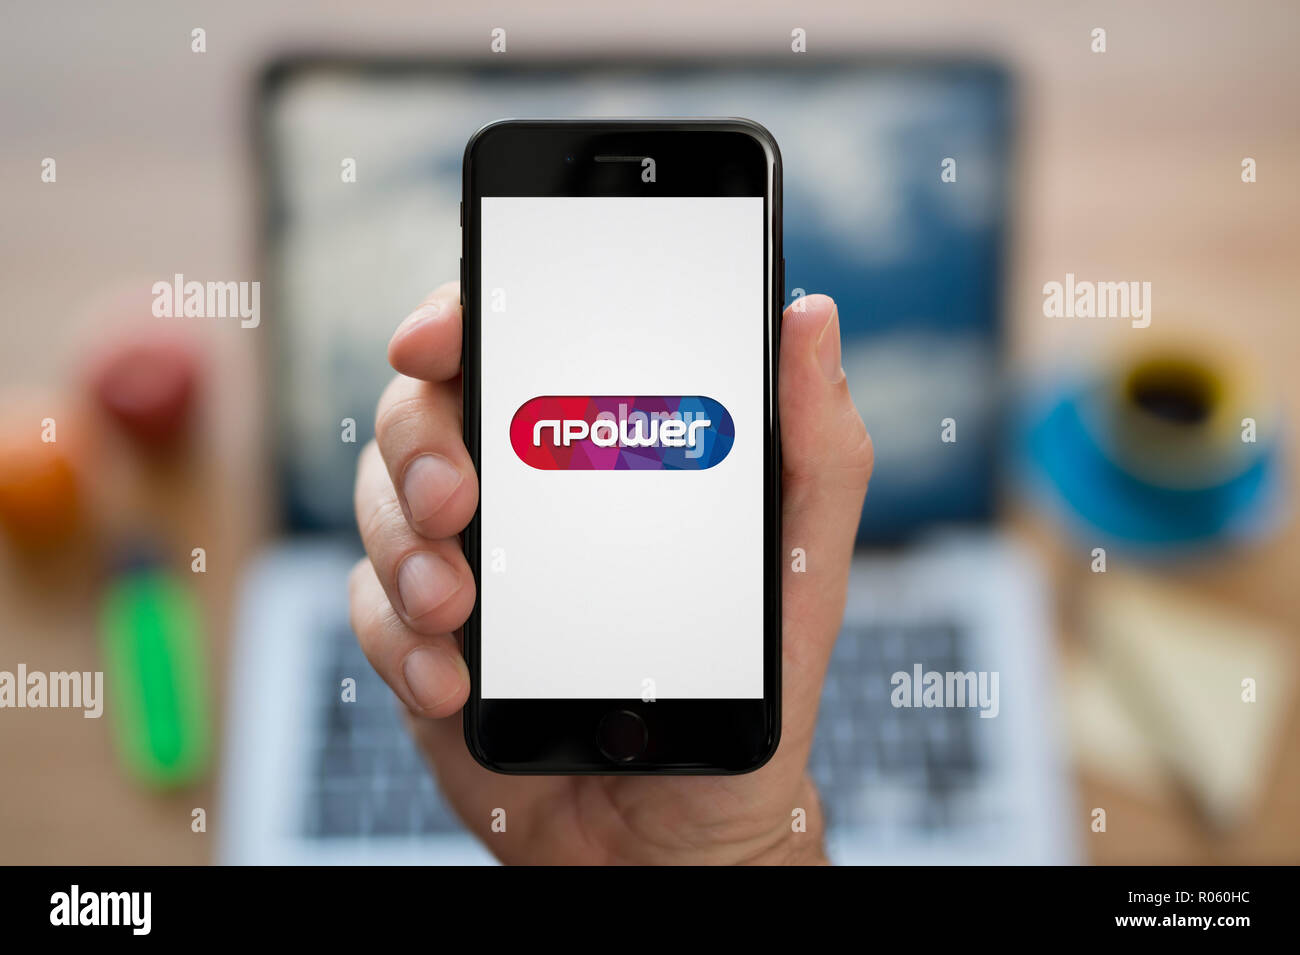 A man looks at his iPhone which displays the NPower logo, while sat at his computer desk (Editorial use only). Stock Photo